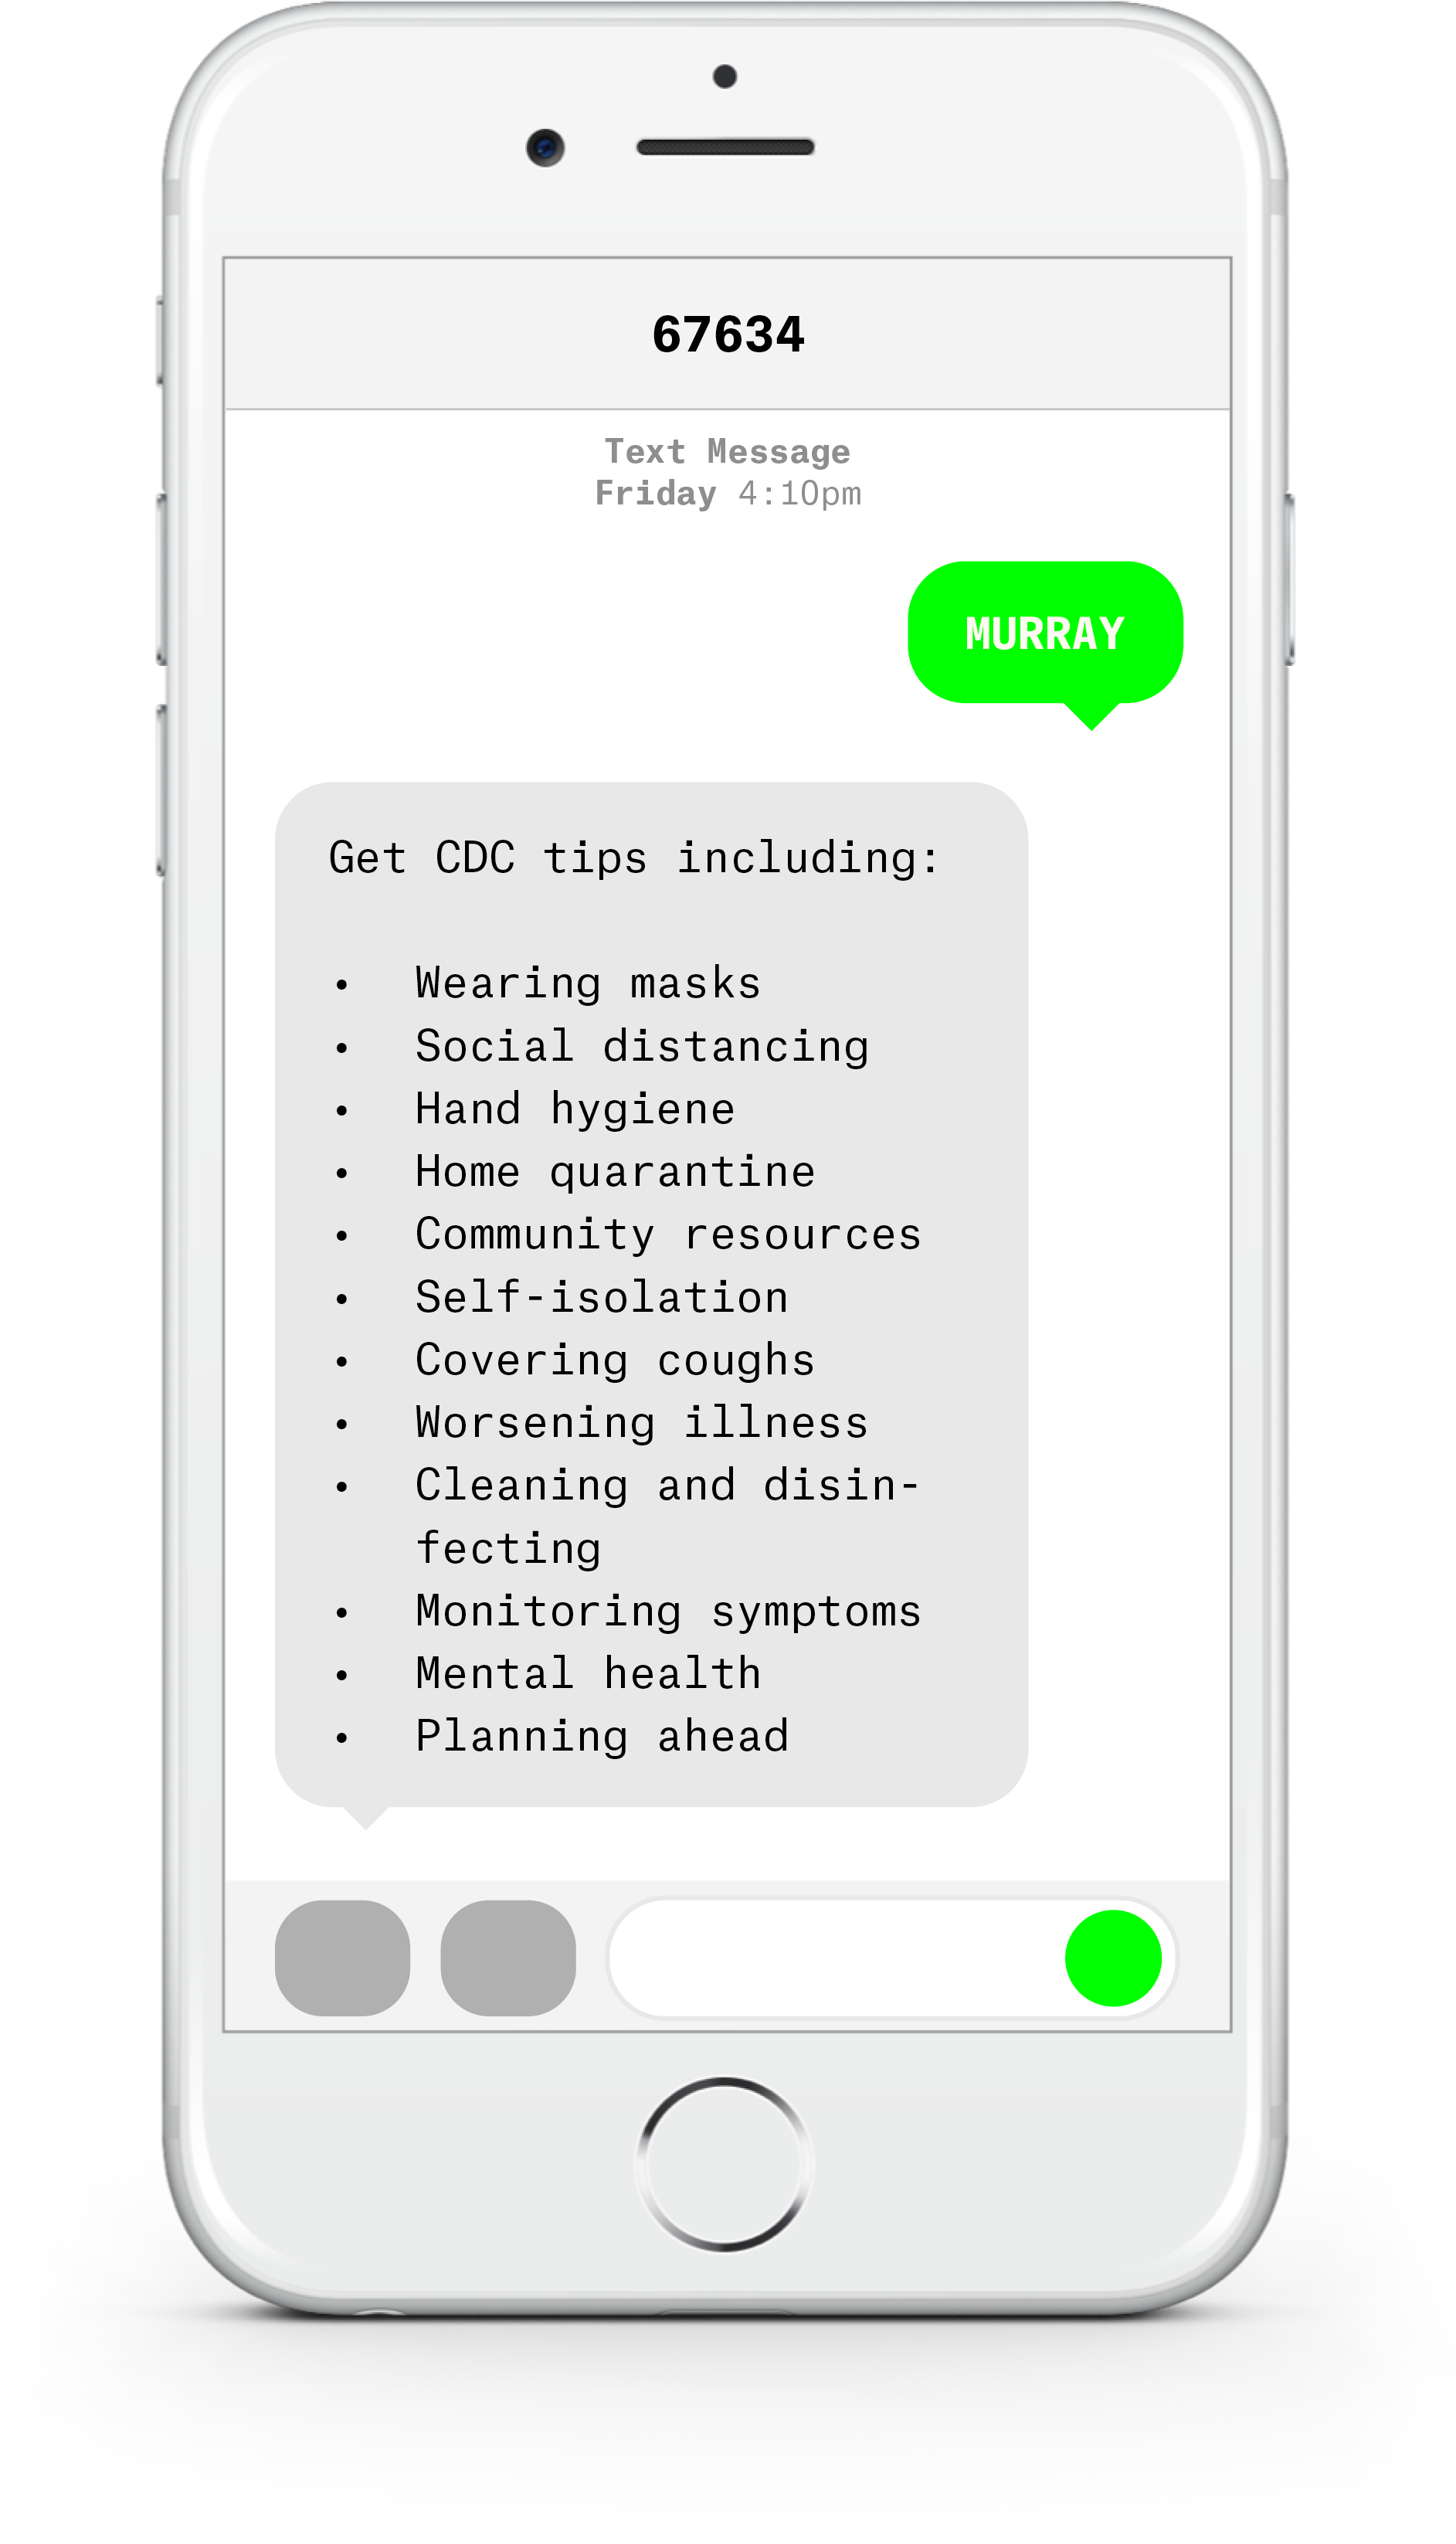 White iPhone with text messages about COVID-19 from Murray County Medical Center.